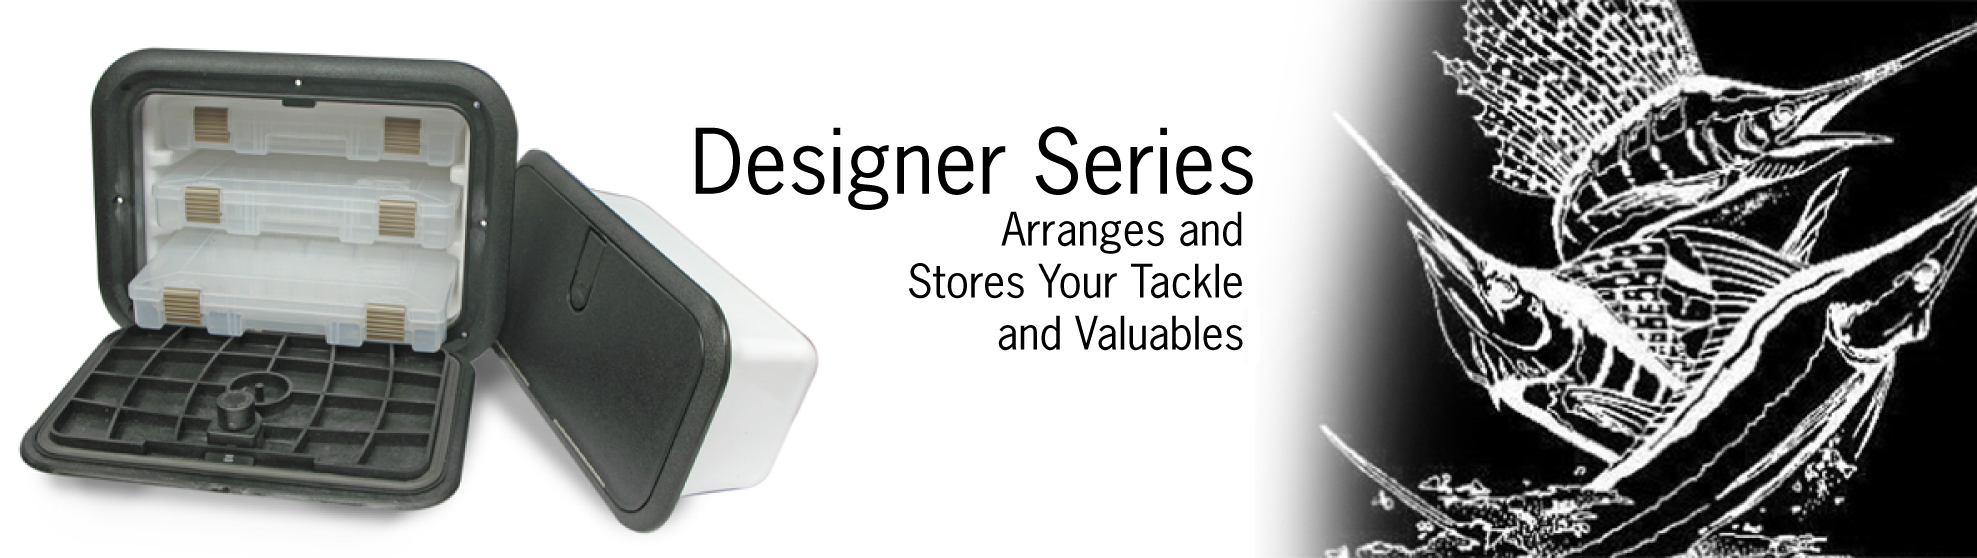 DESIGNER SERIES Tackle and Valuables